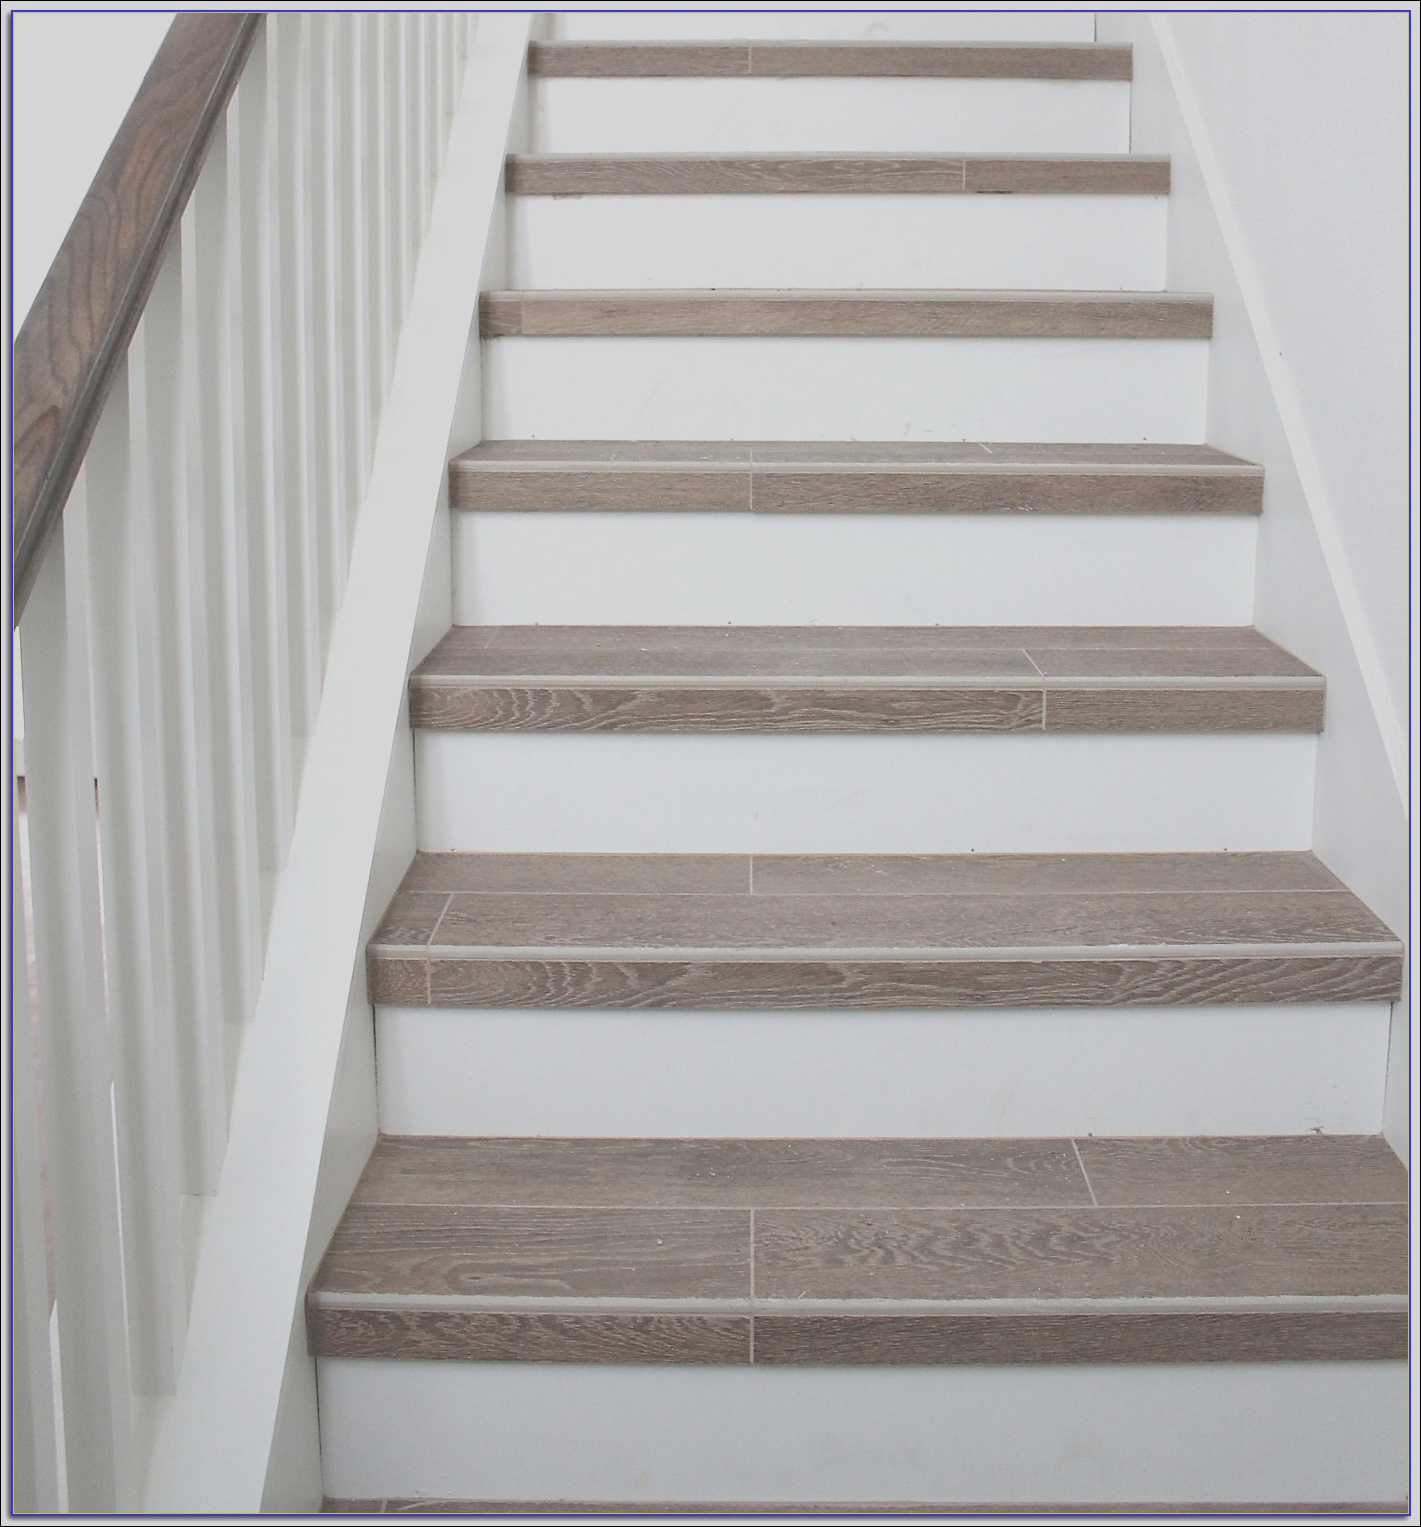 stair nosing for tiled step